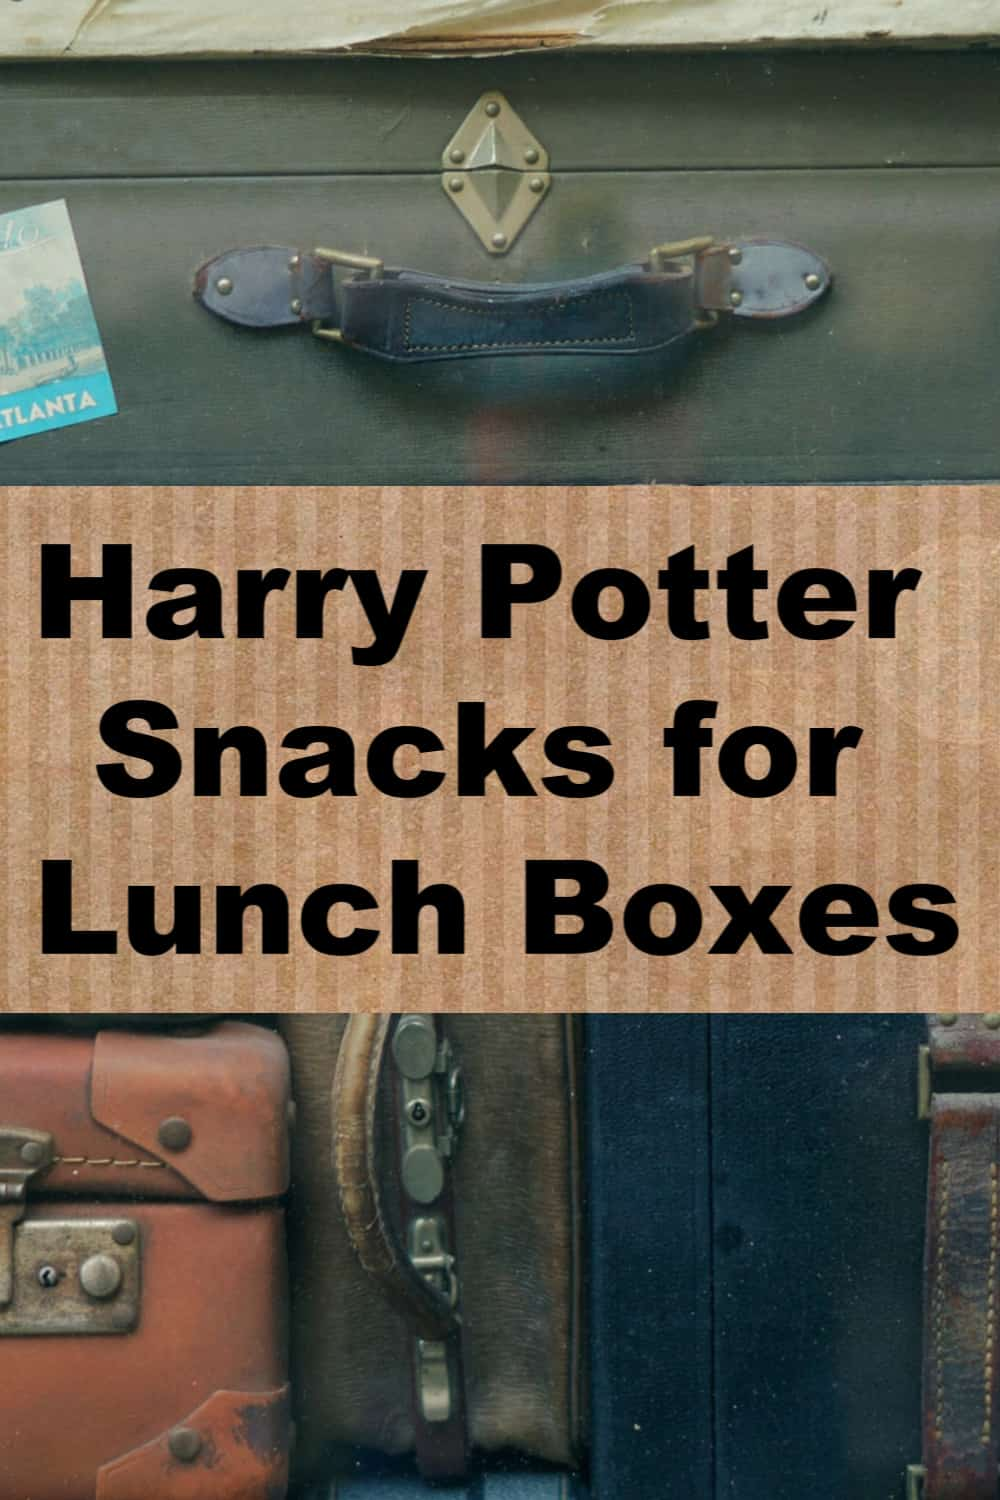 Harry Potter Snacks for Lunch Boxes for your favorite Harry Potter fan. These Harry Potter snacks are perfect for lunch or for a Harry Potter party!